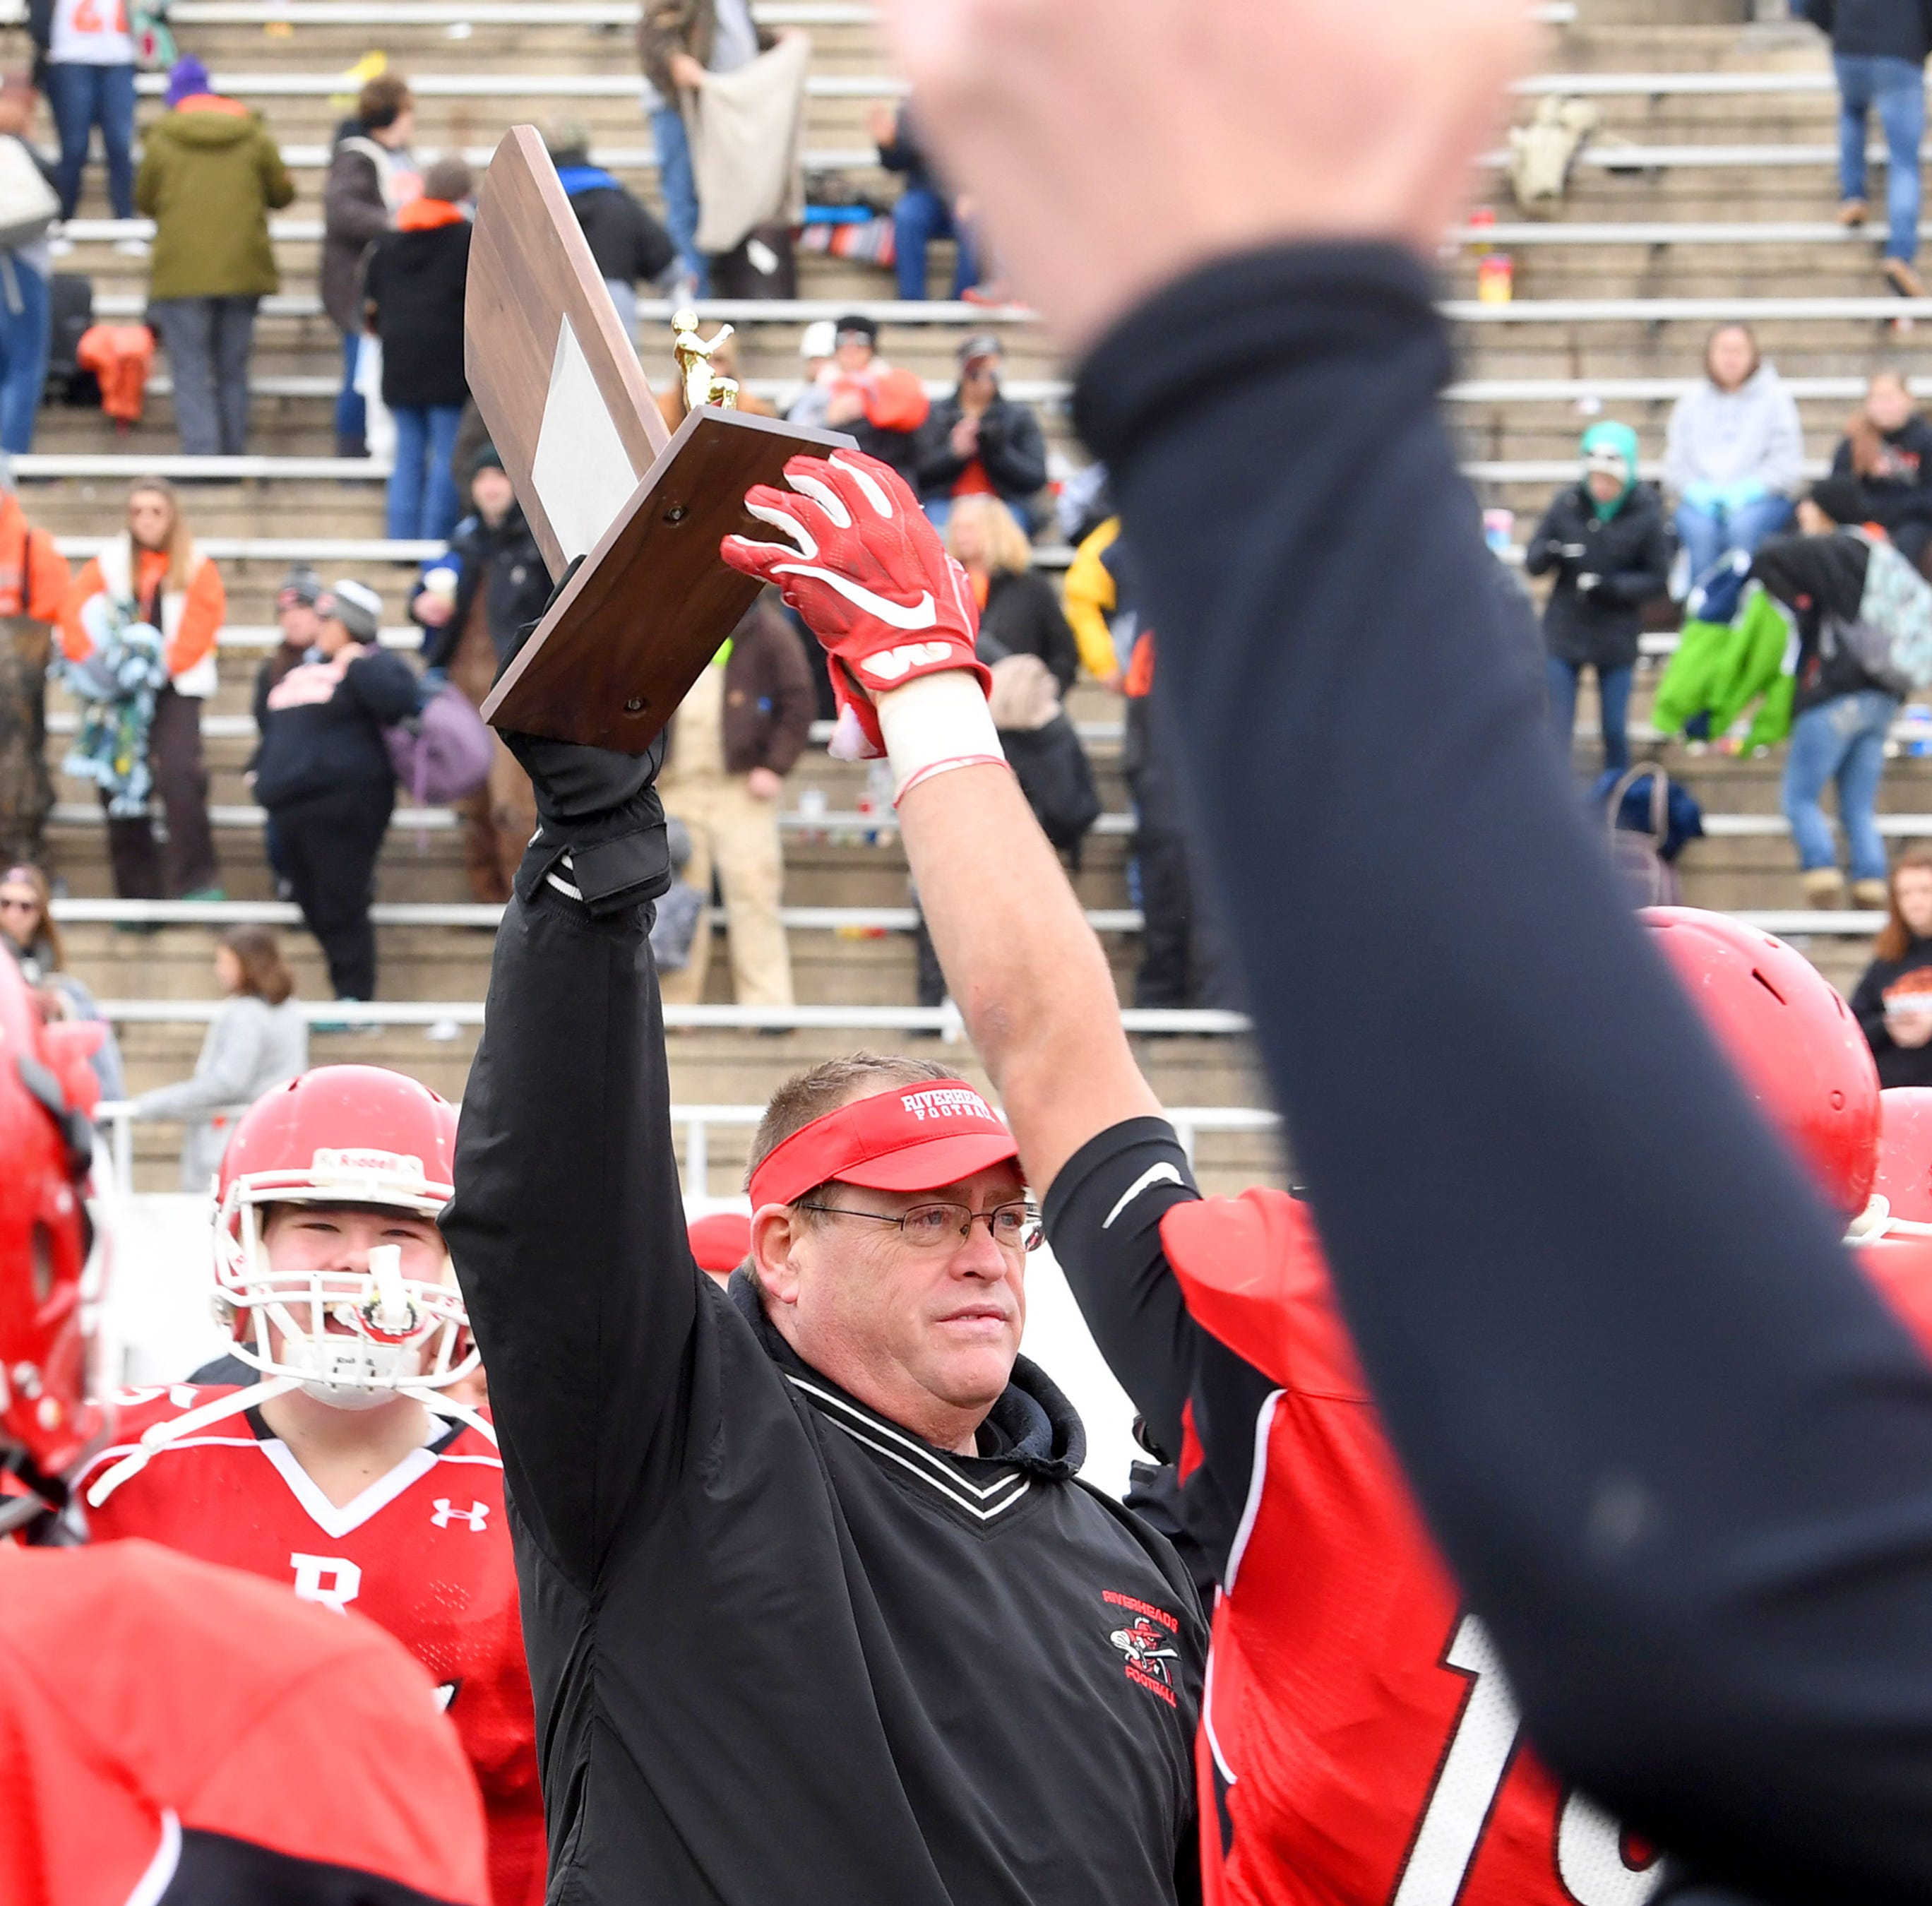 3 reasons Riverheads fans should be thrilled Casto is back